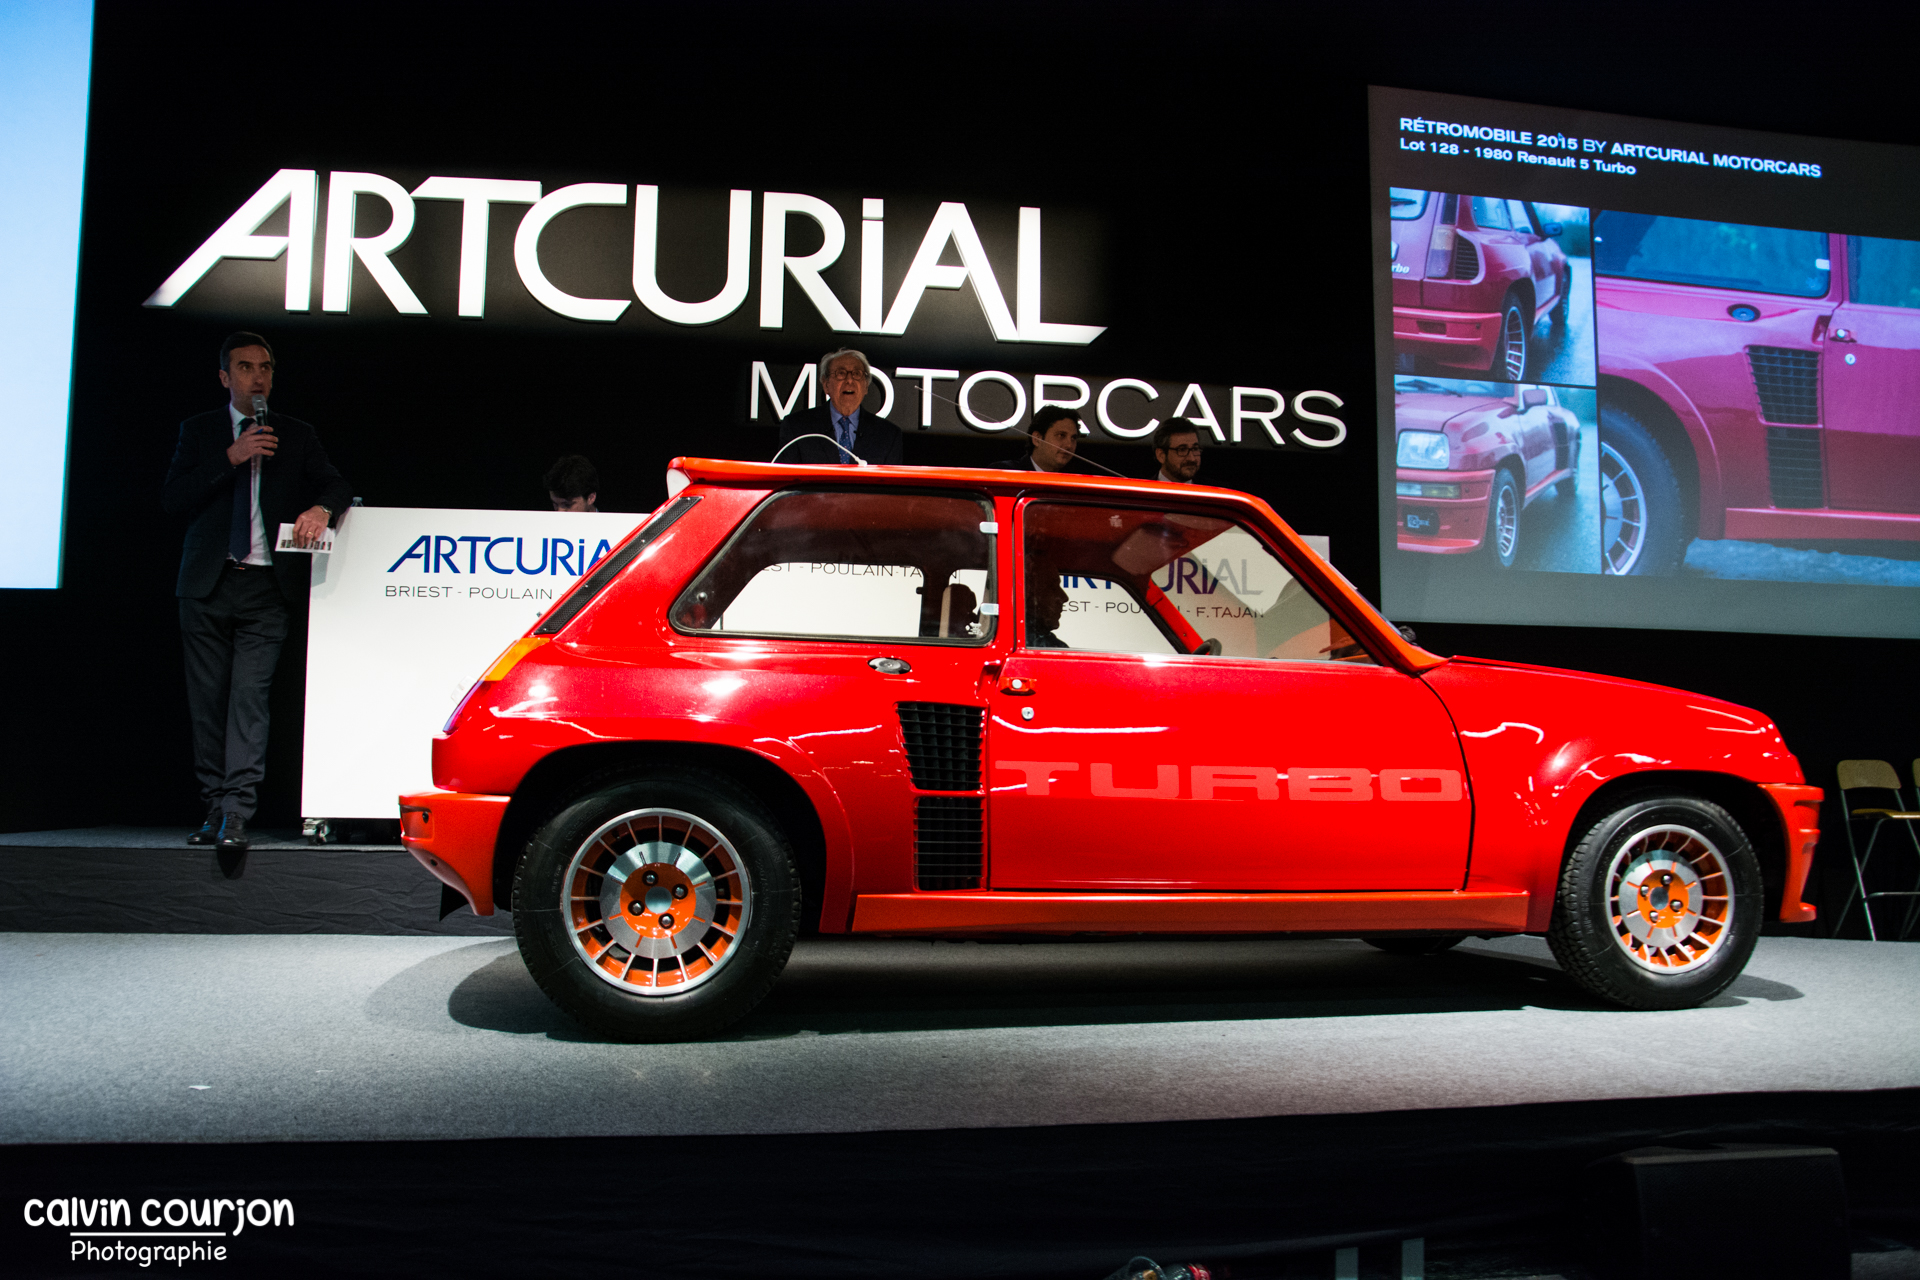 1980 Renault 5 Turbo - Calvin Courjon Photographie